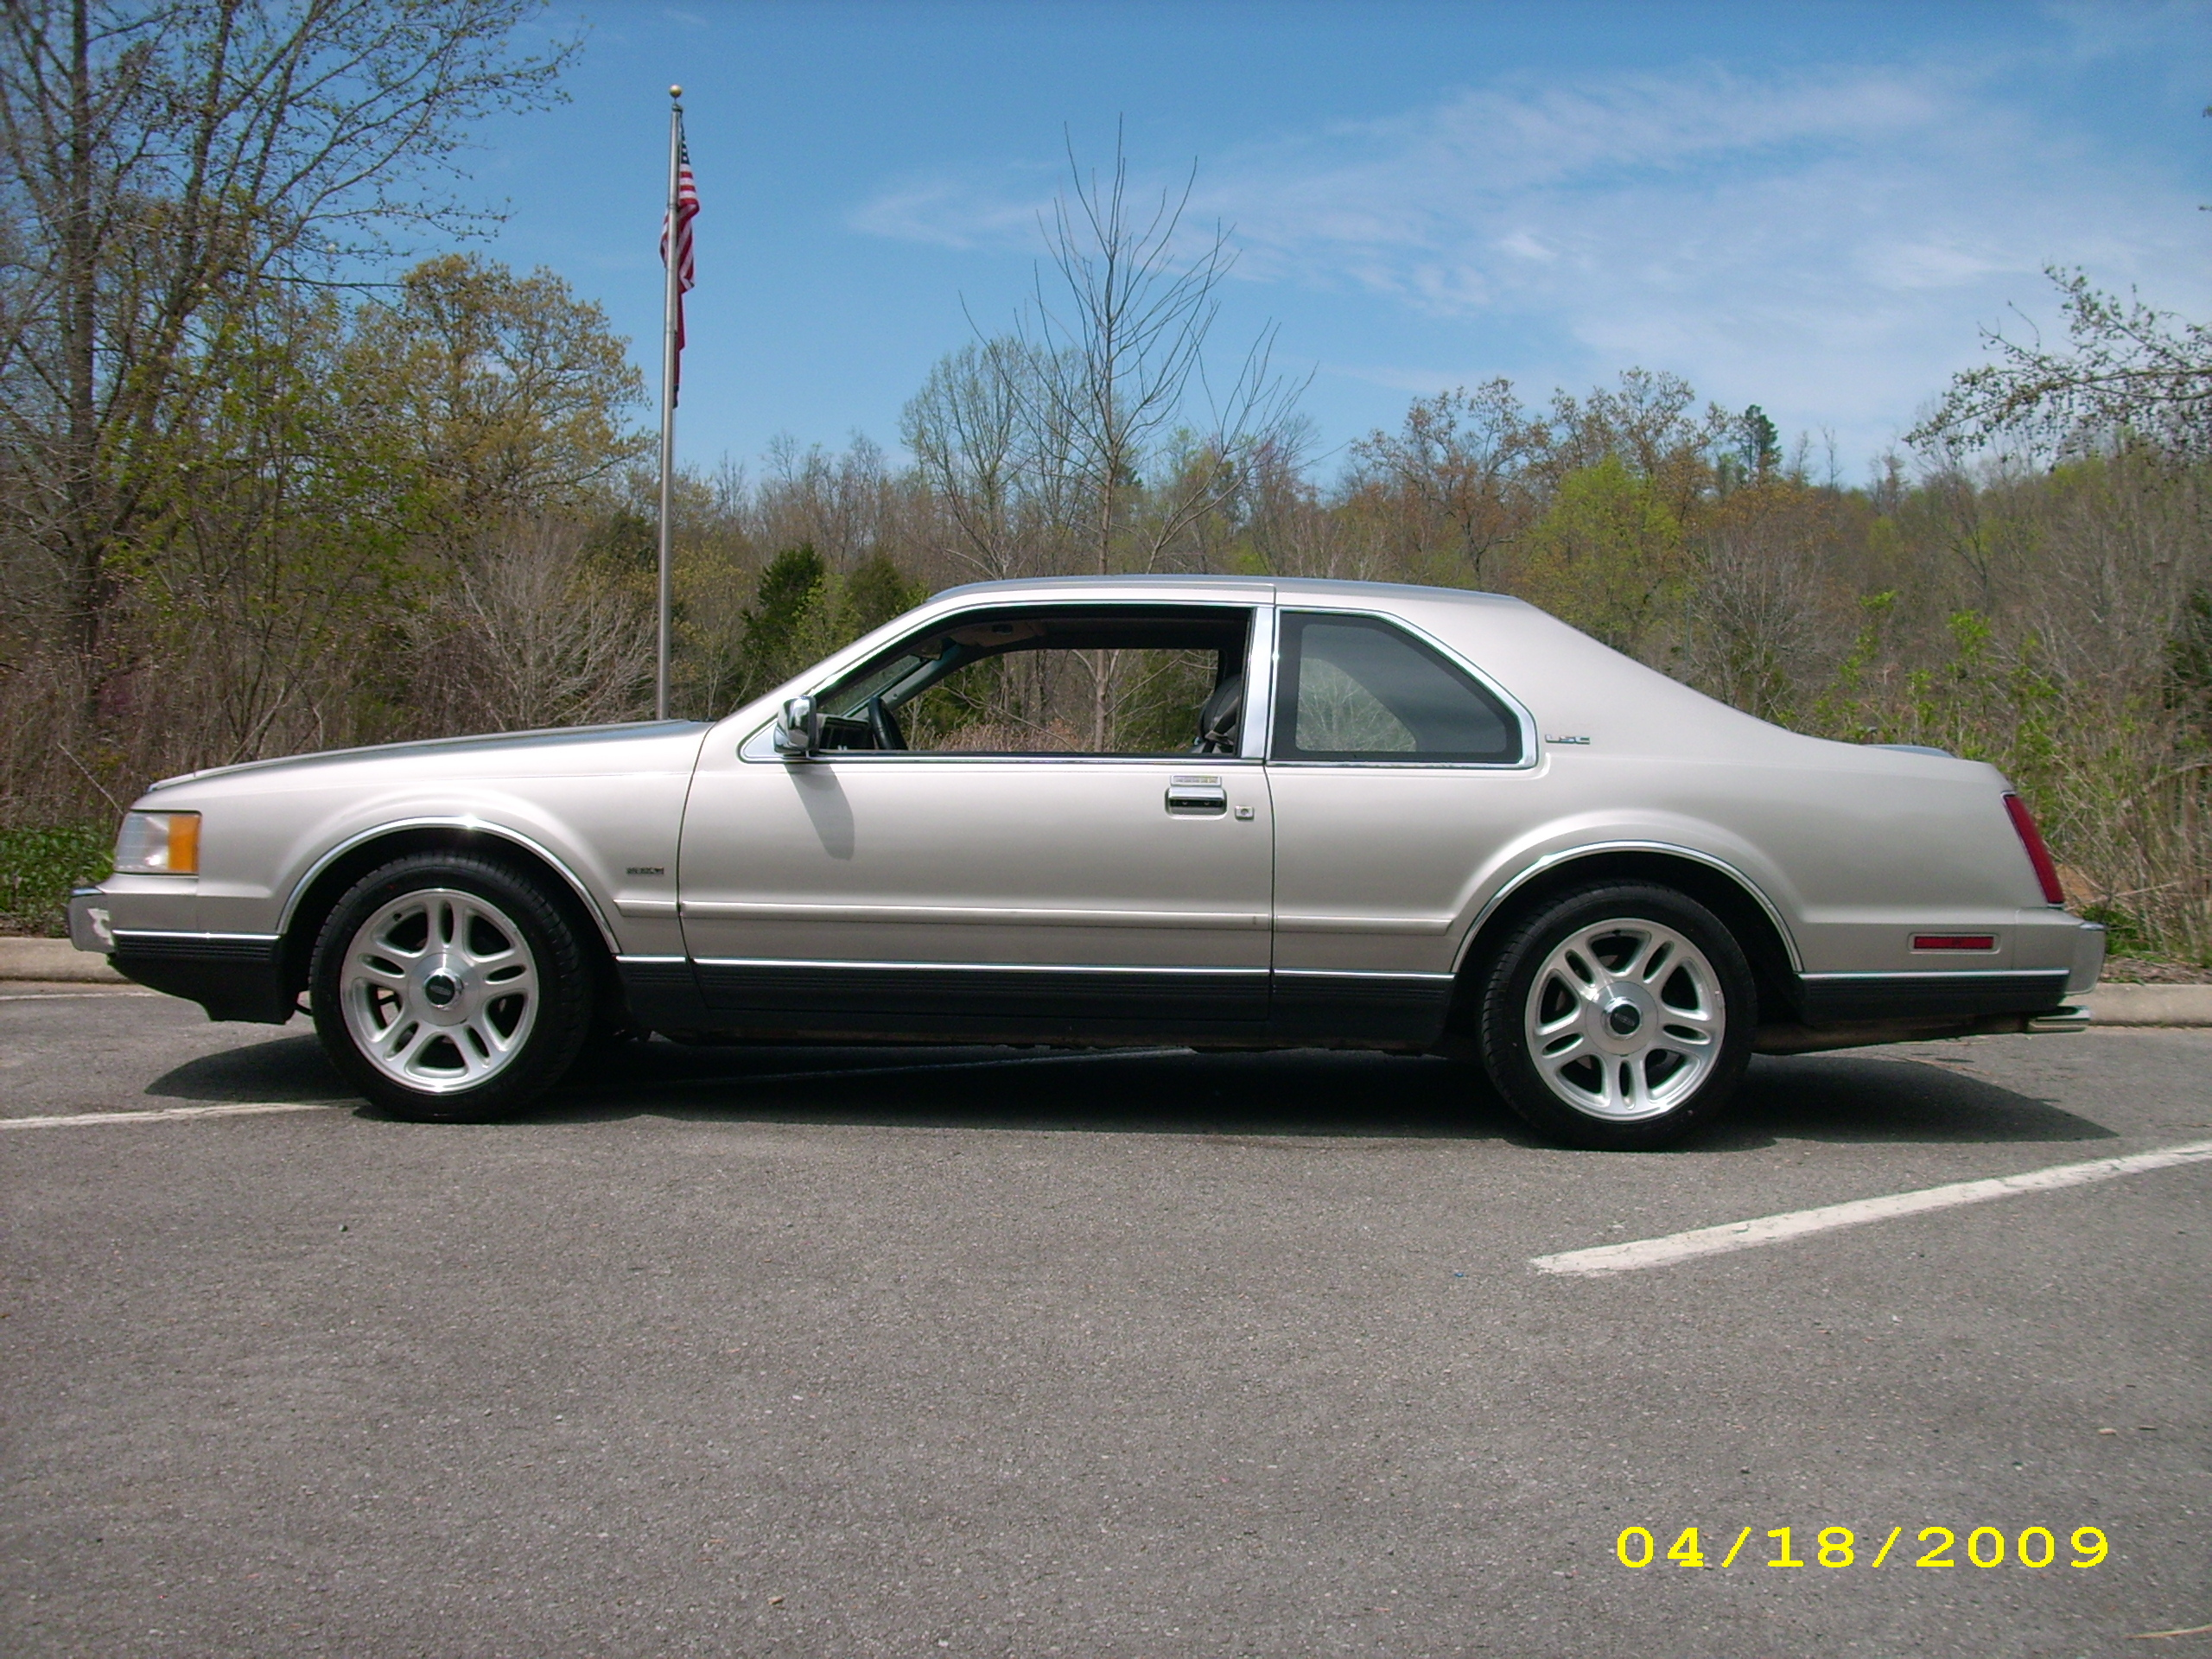 cb400f75's 1989 Lincoln Mark VII